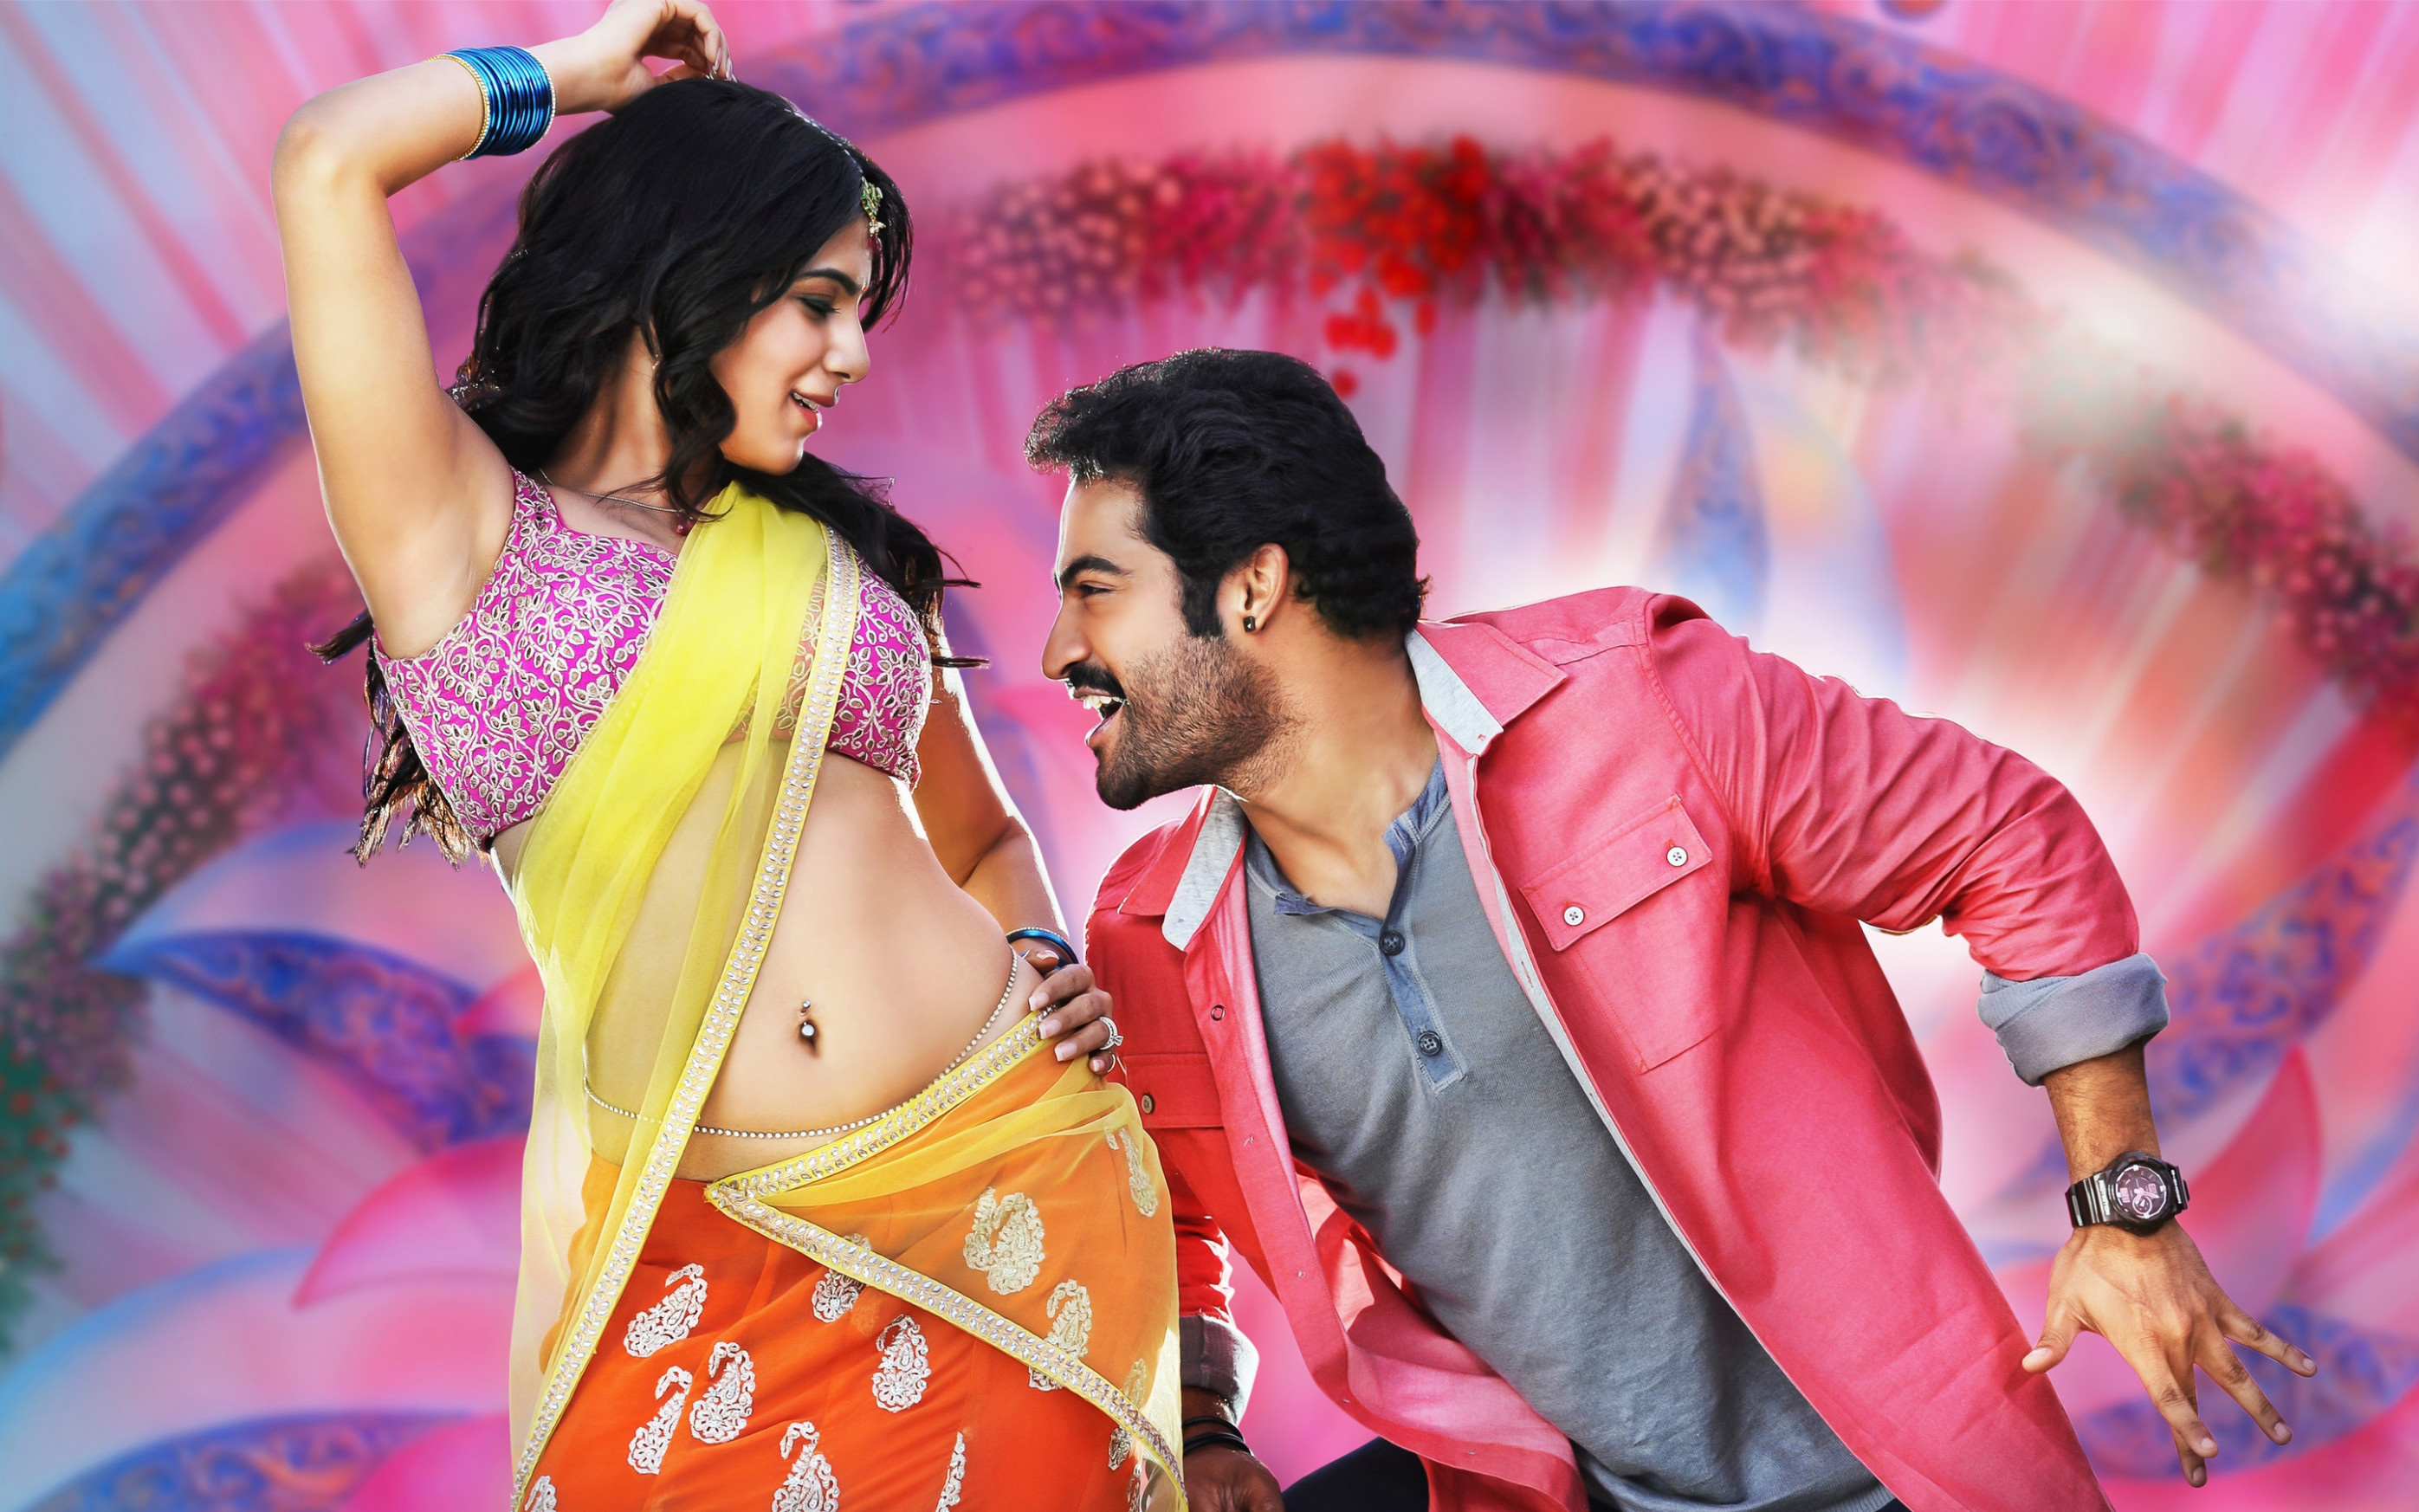 tollywood movies - Video Search Engine at Search.com